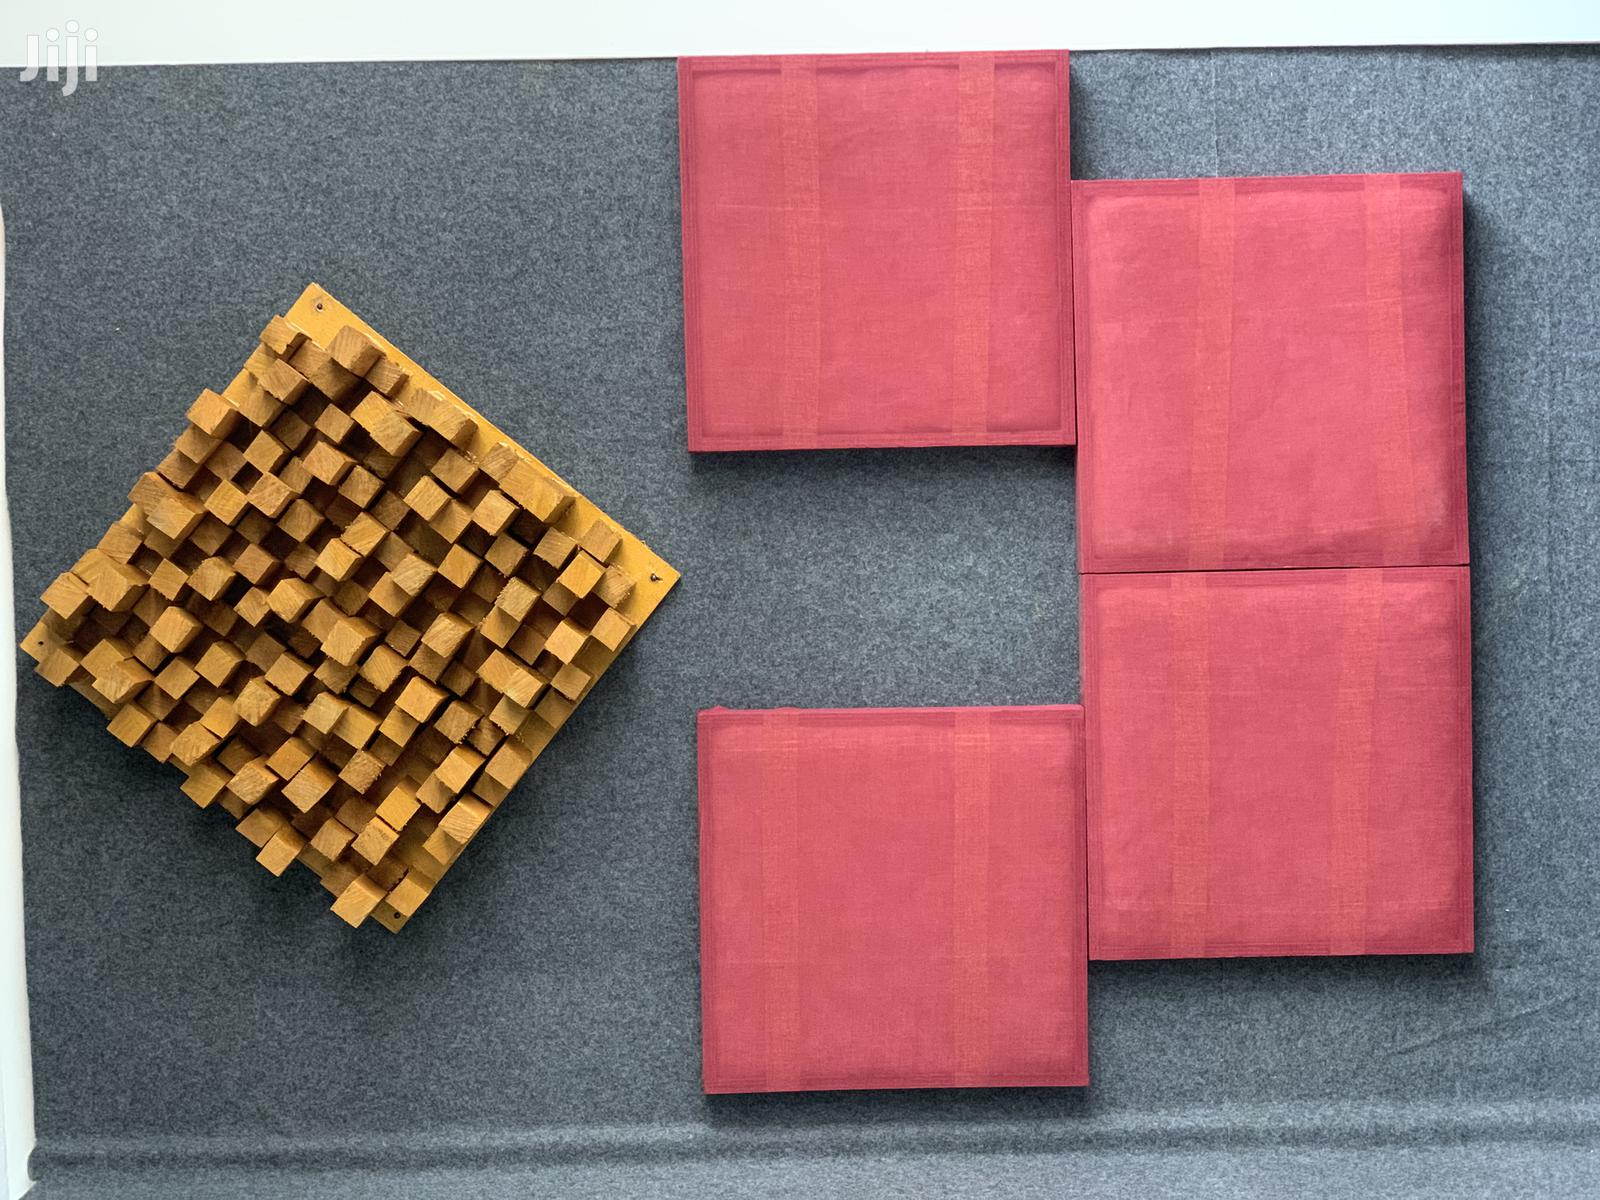 Rockwool Acoustic Panels | Musical Instruments & Gear for sale in Osu, Greater Accra, Ghana